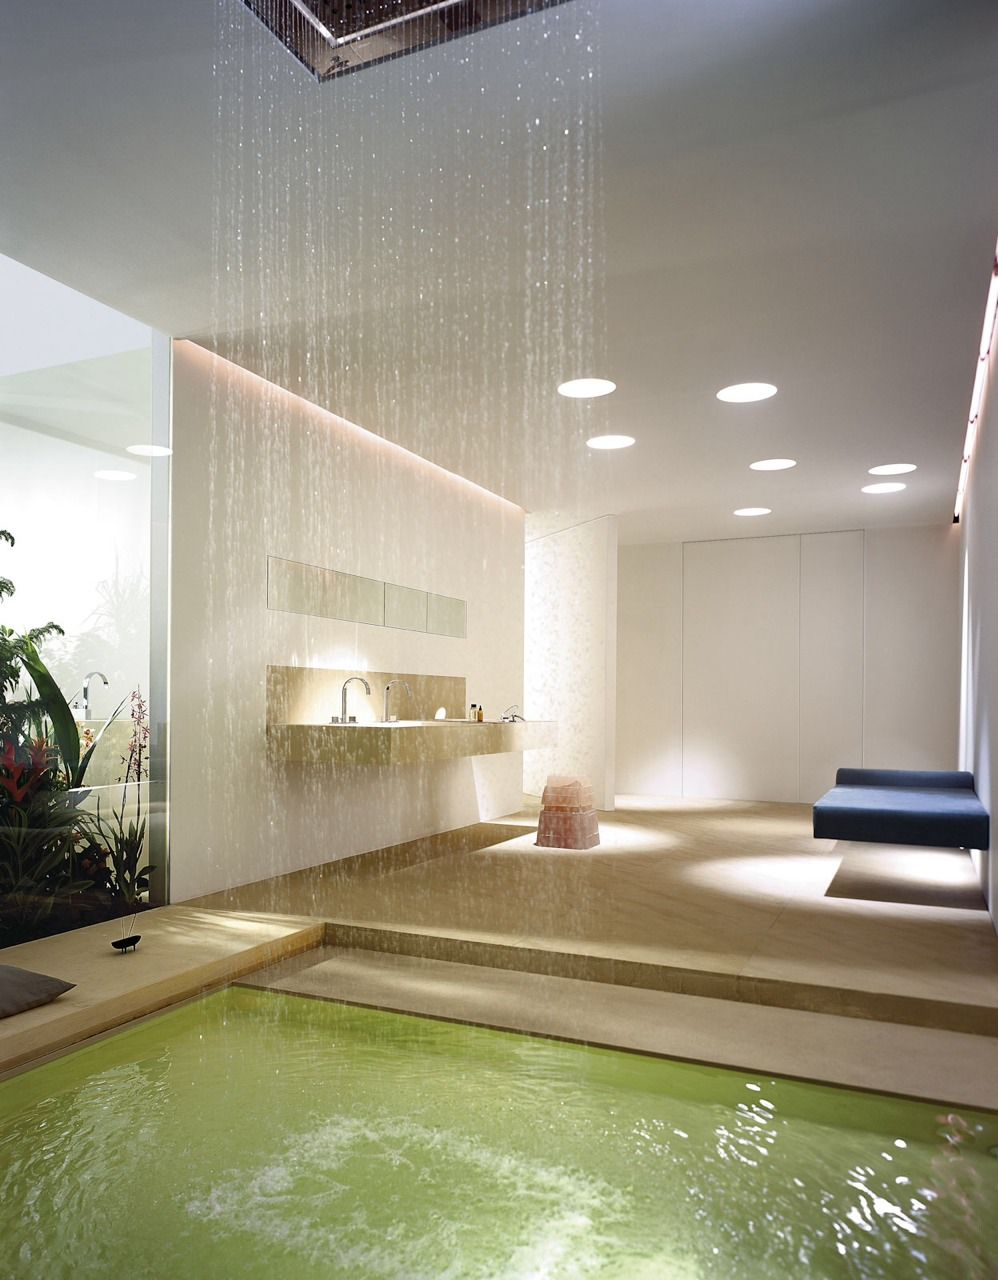 Dream bathrooms tumblr  tumblr  home and yard  pinterest  showers future and future house